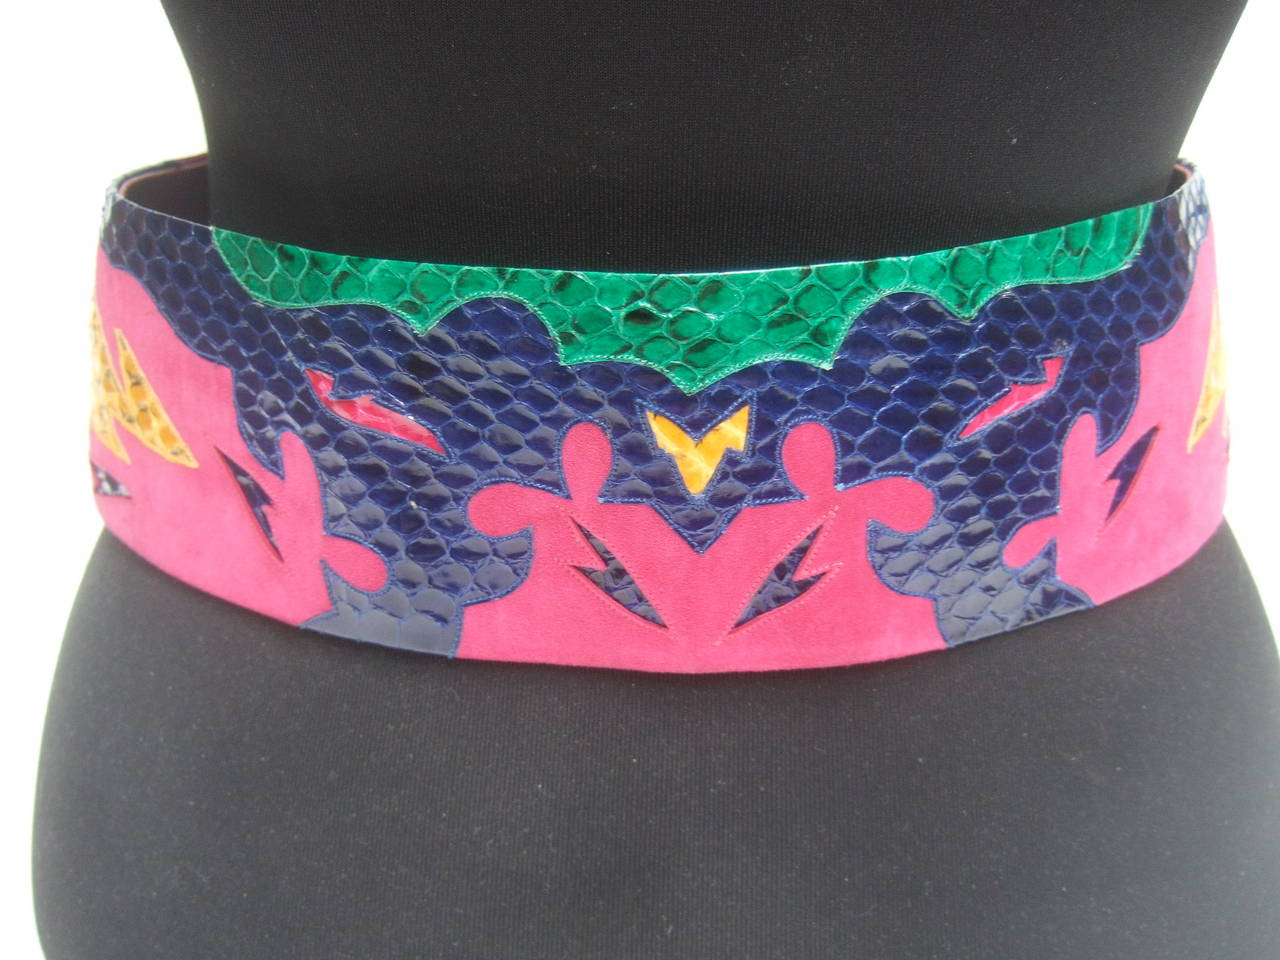 Exotic Italian wide snakeskin fuchsia suede belt c 1980s